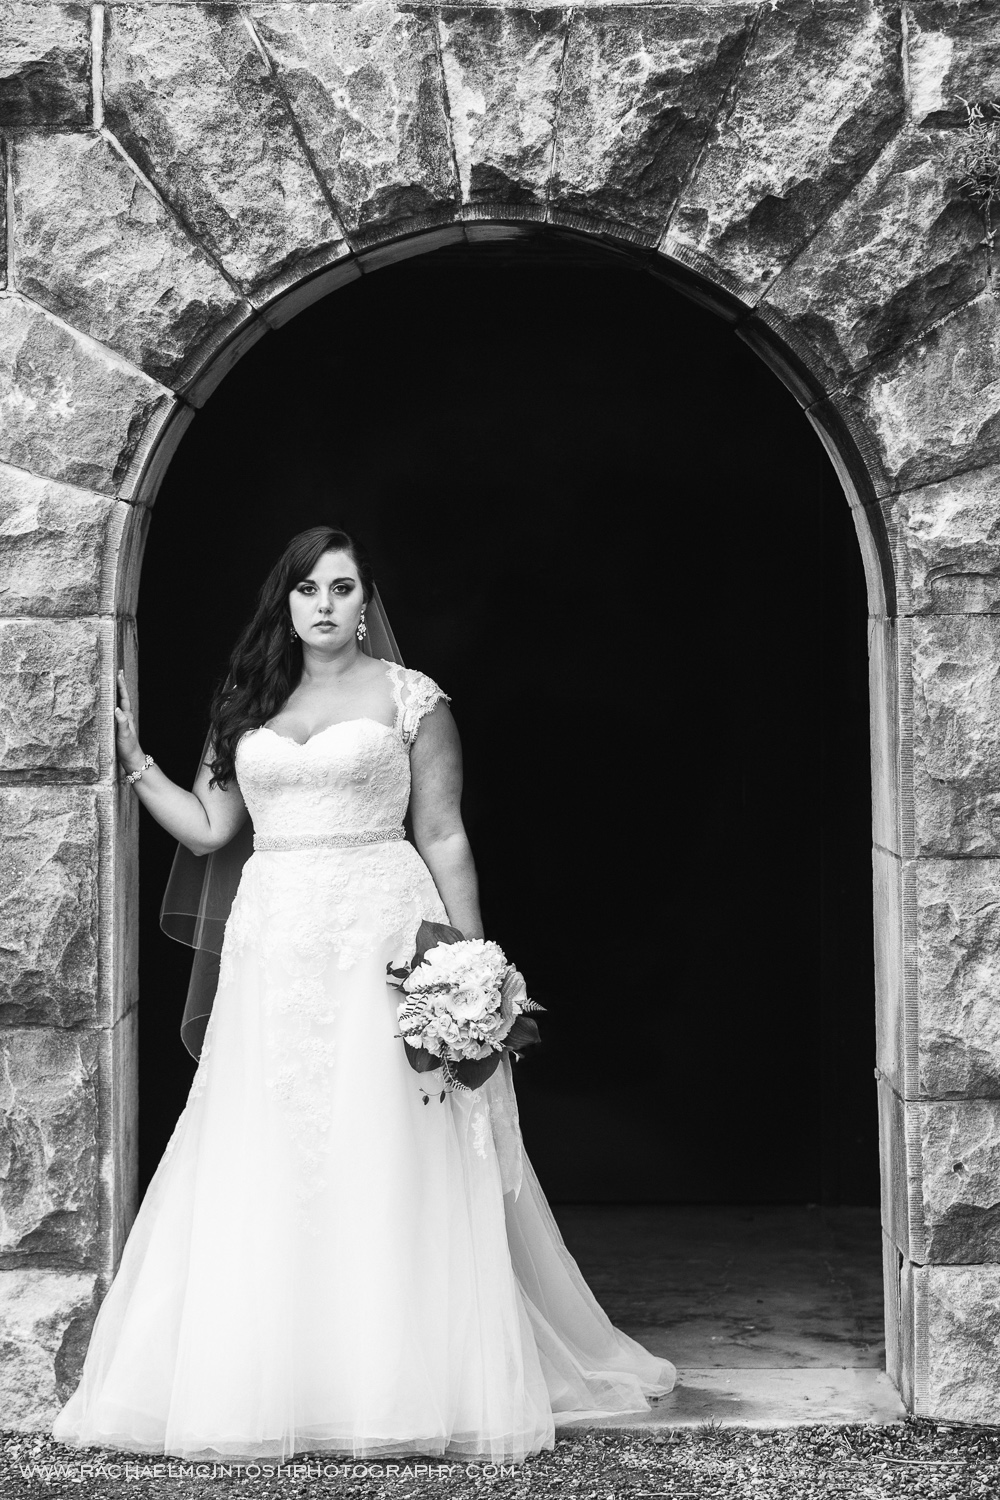 Biltmore Wedding Portraits-Rachael McIntosh Photography-1-10.jpg